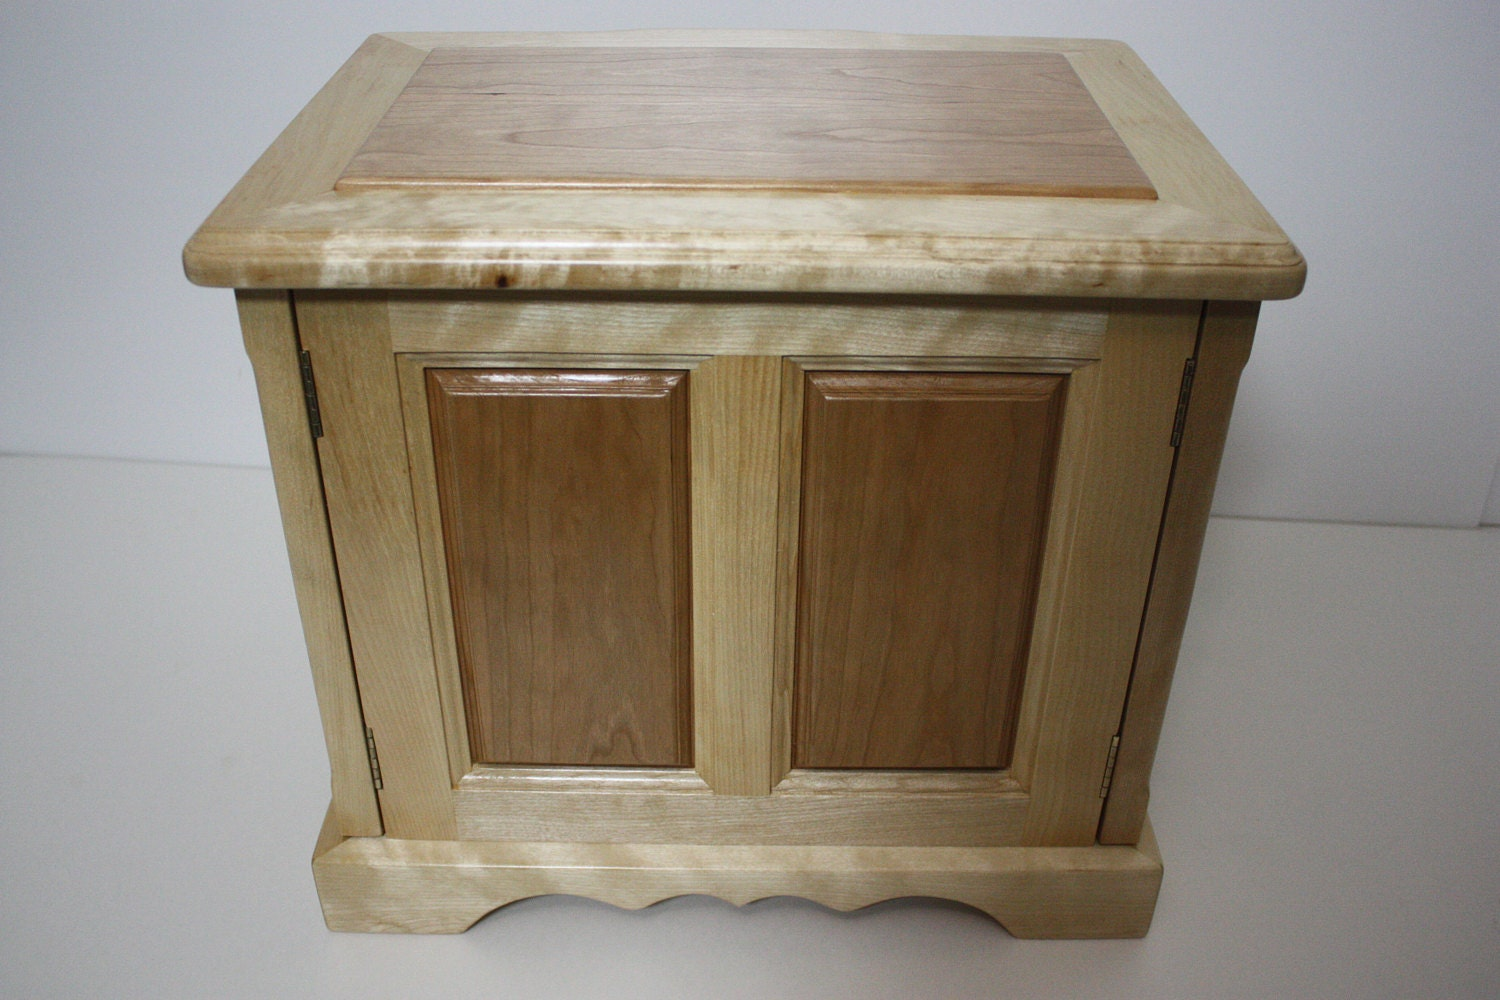 Handmade Jewelry Box with Cherry Wood Raised Panels For Sale